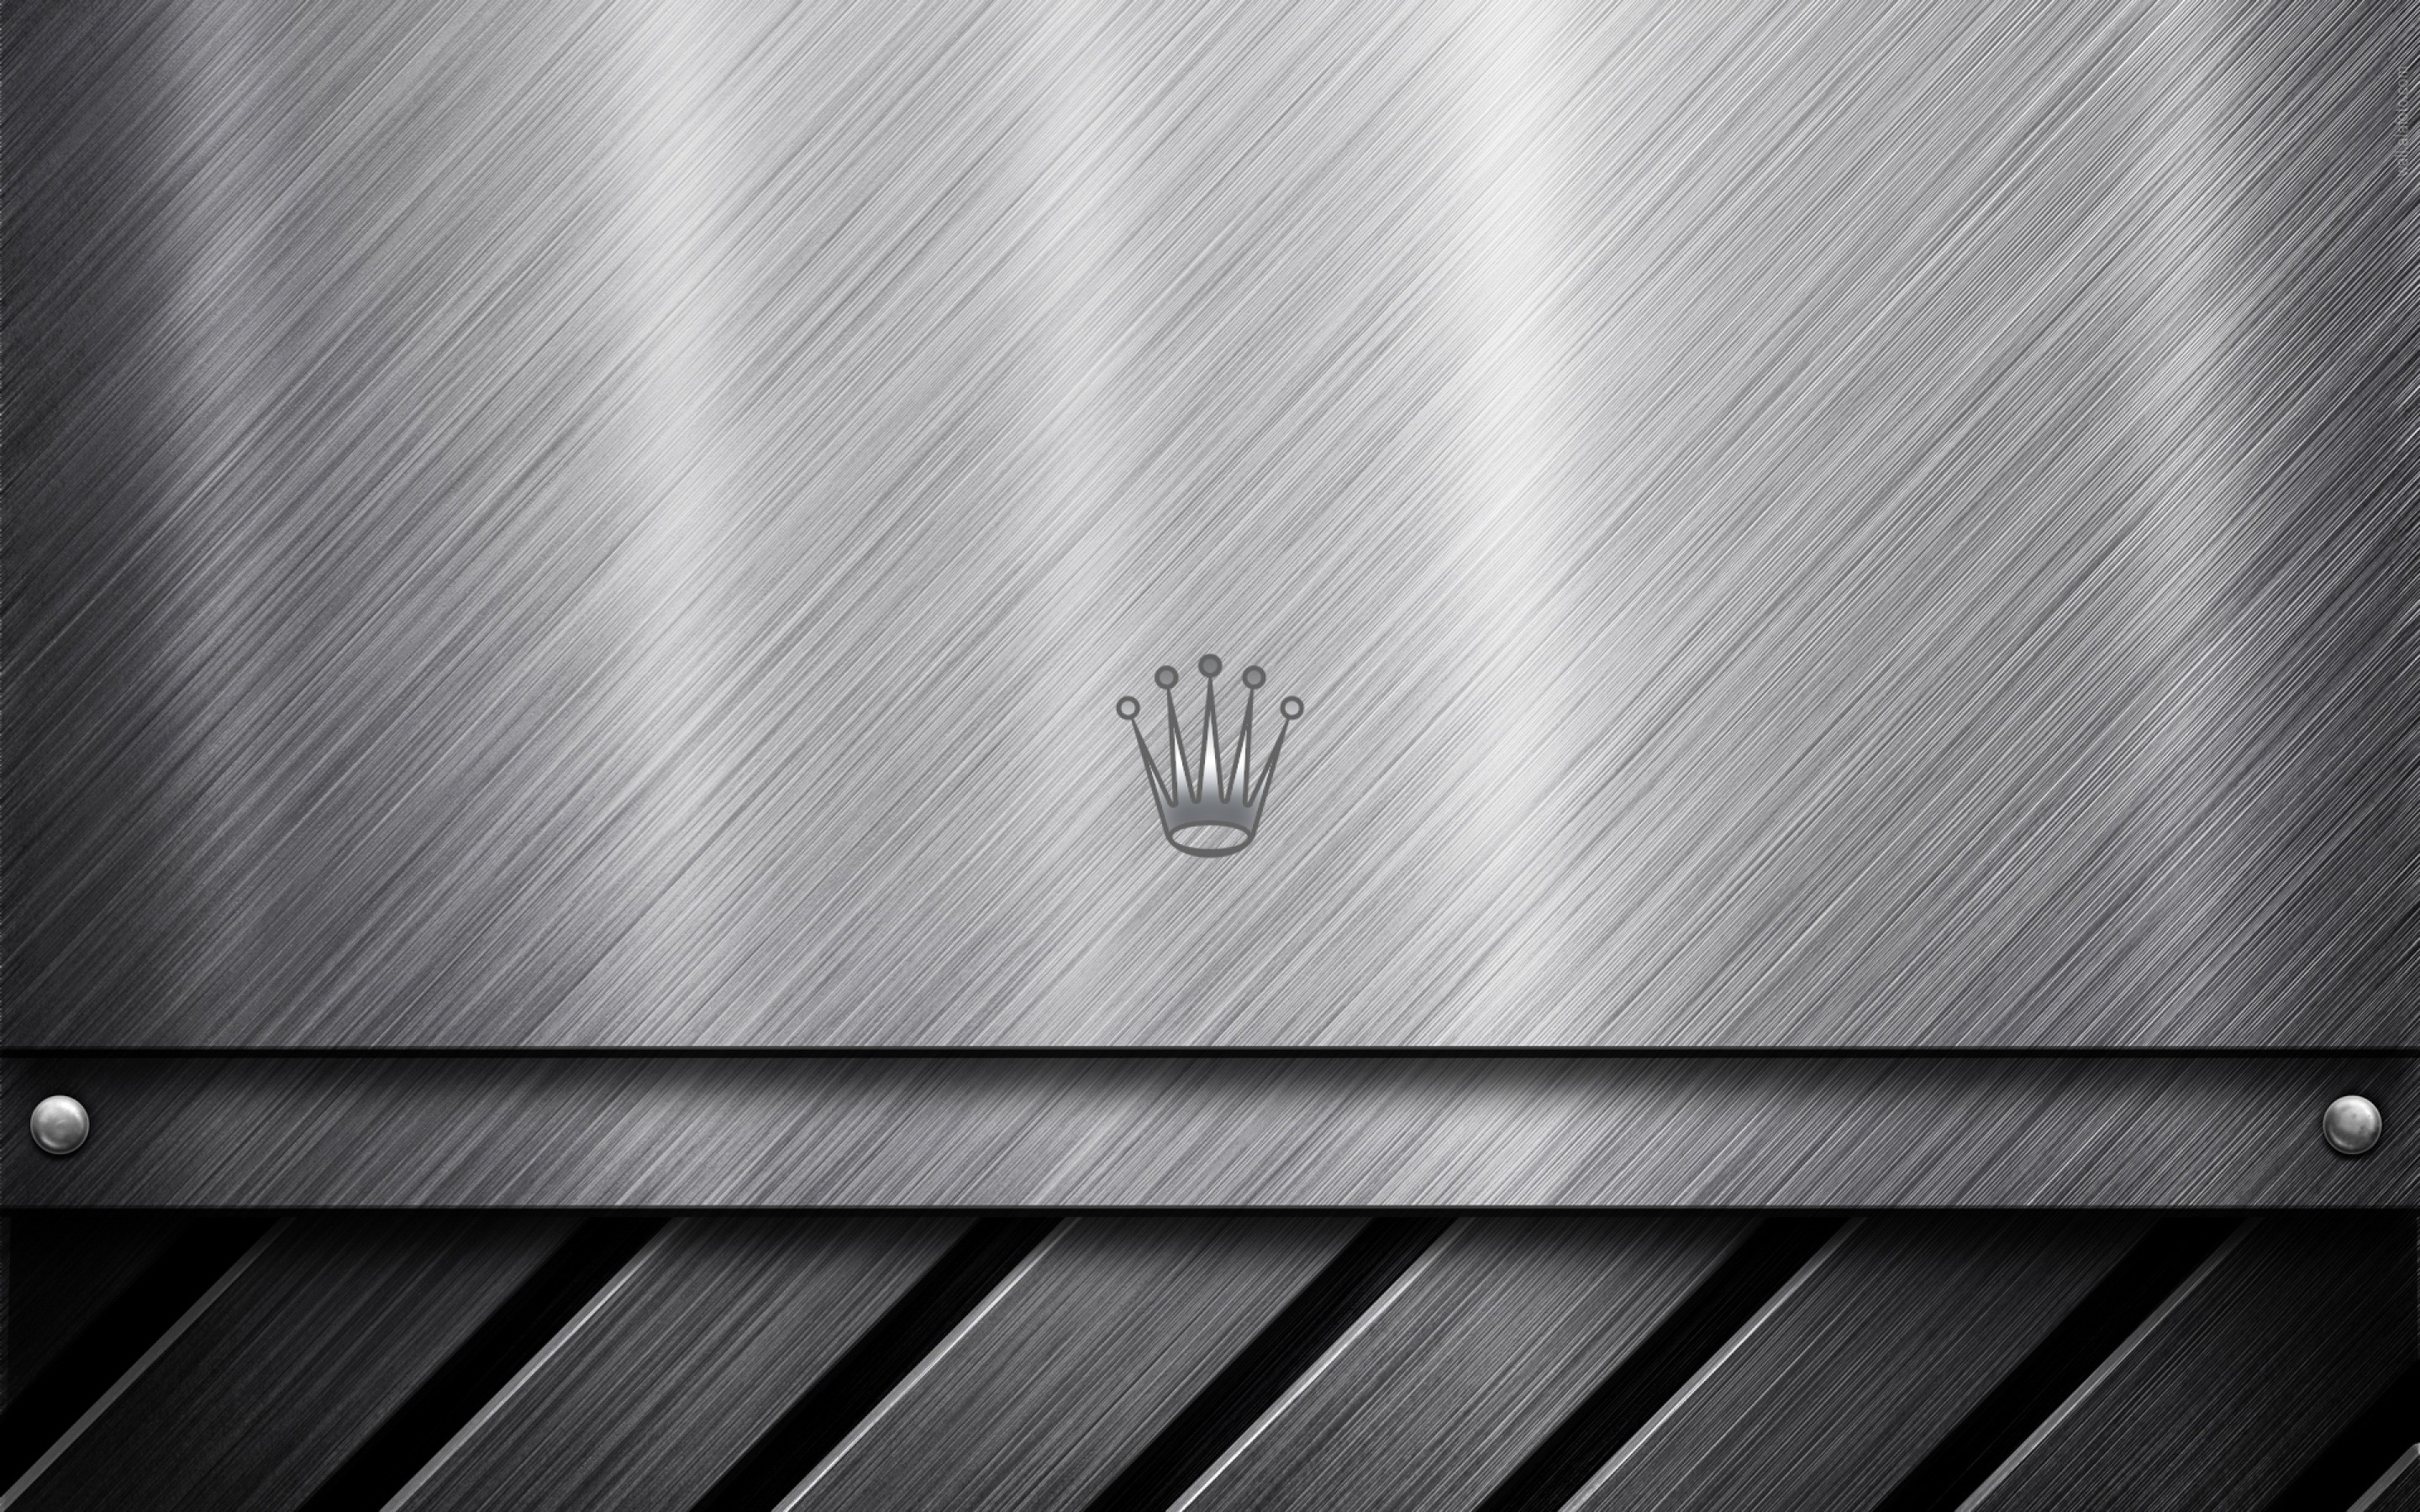 rolex-logo-wallpaper-1920x1200-34-1